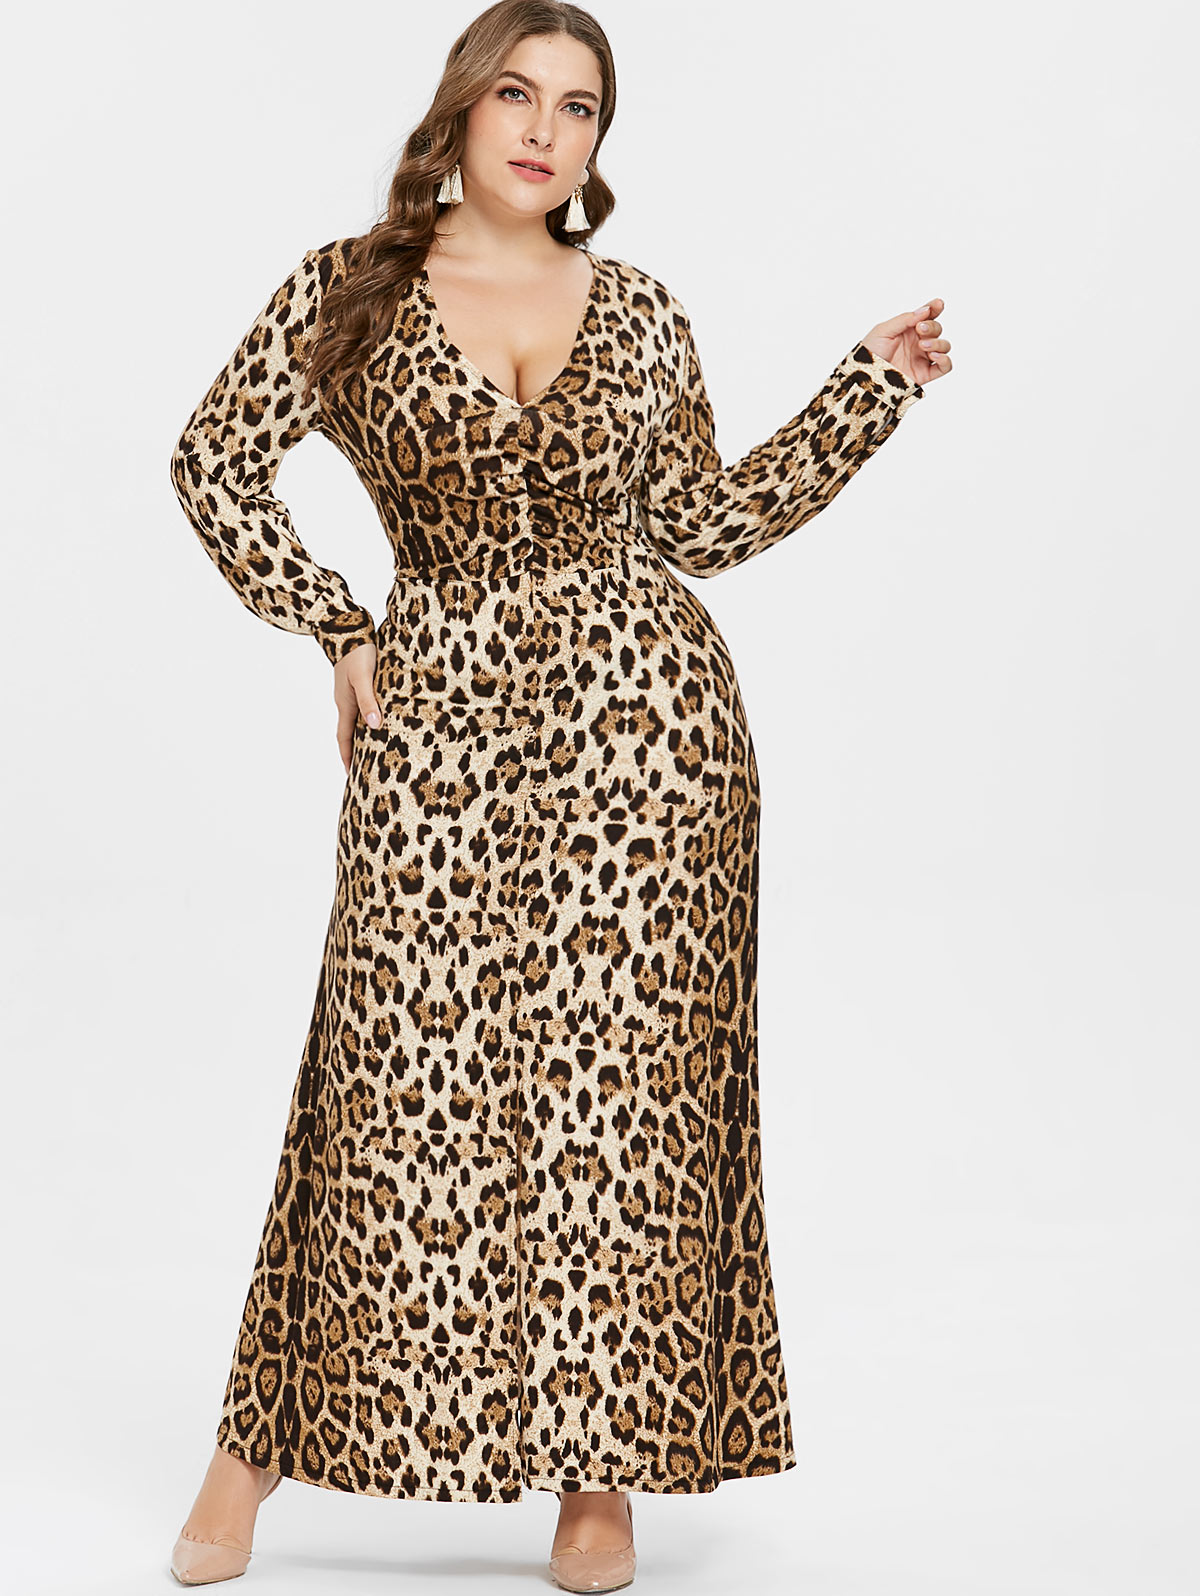 Wipalo Plus Size Sexy V Neck Leopard Dress Women Long Sleeves Ankle-Length  Dress Casual Autumn Ladies Clothes Big Size Vestido ec5472aefdfb